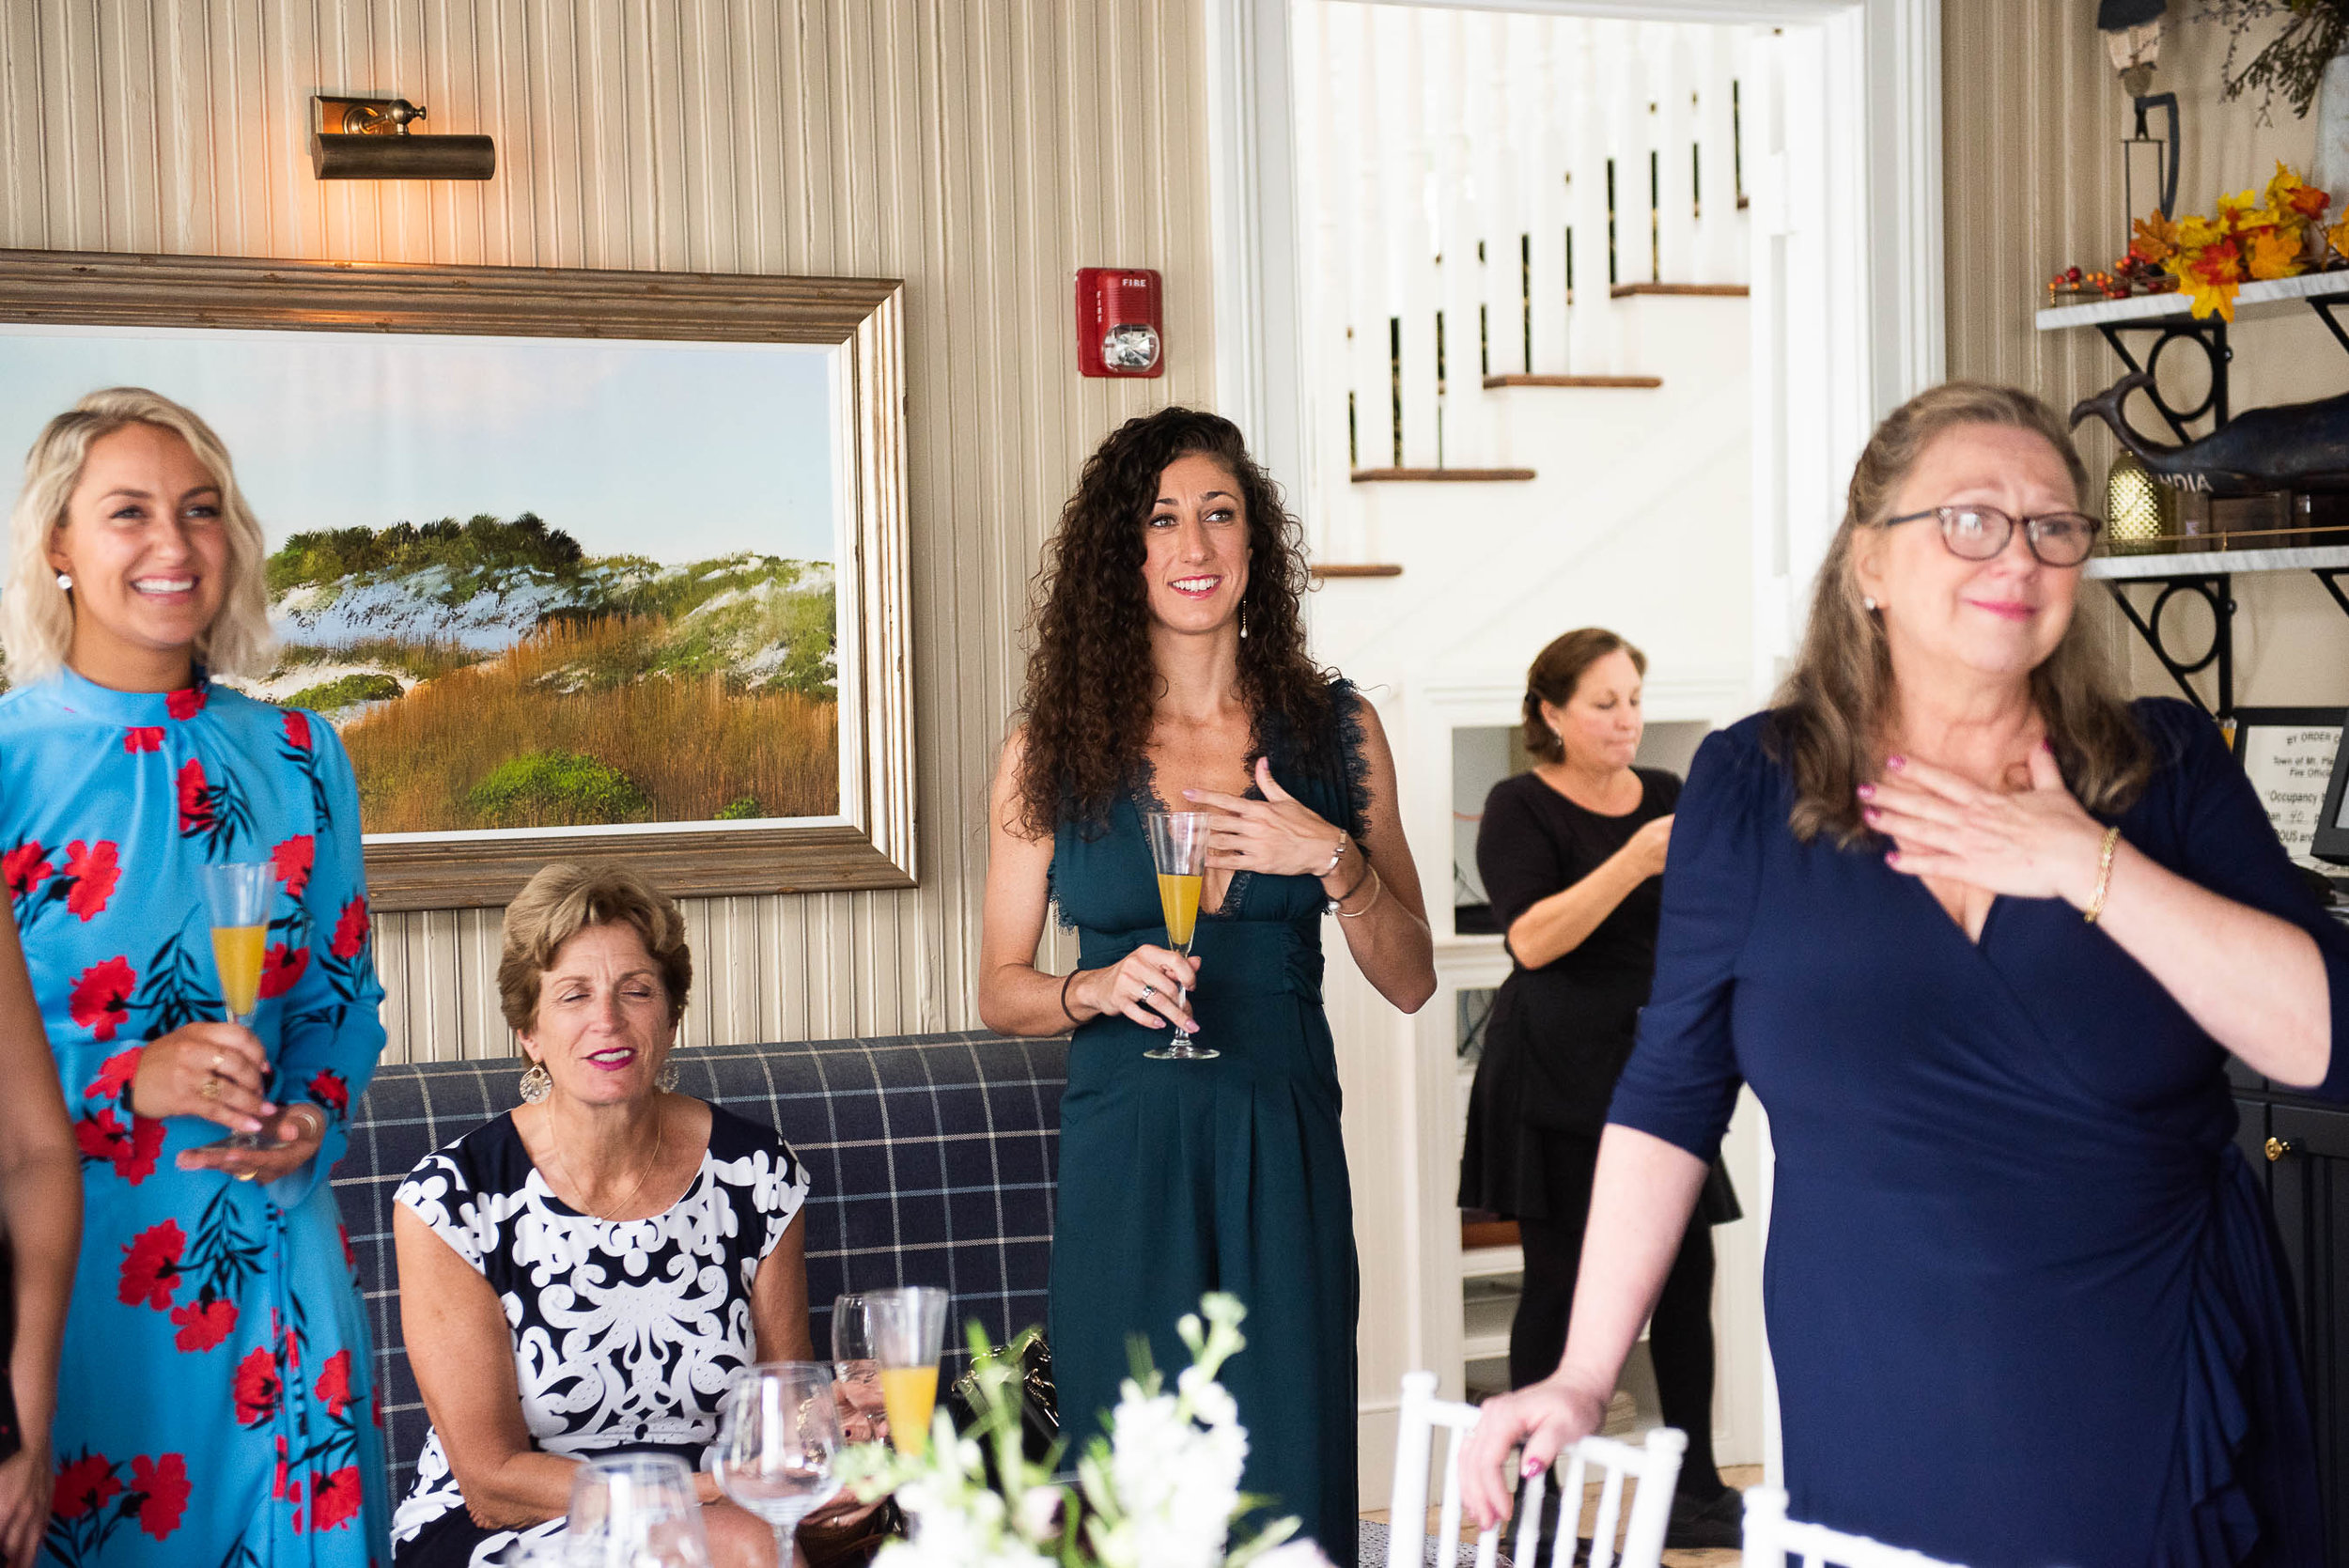 Charleston Event Photographer Reese Moore Photography Bridal Luncheon at the Old Village Post House Inn in Mount Pleasant SC-0667.jpg